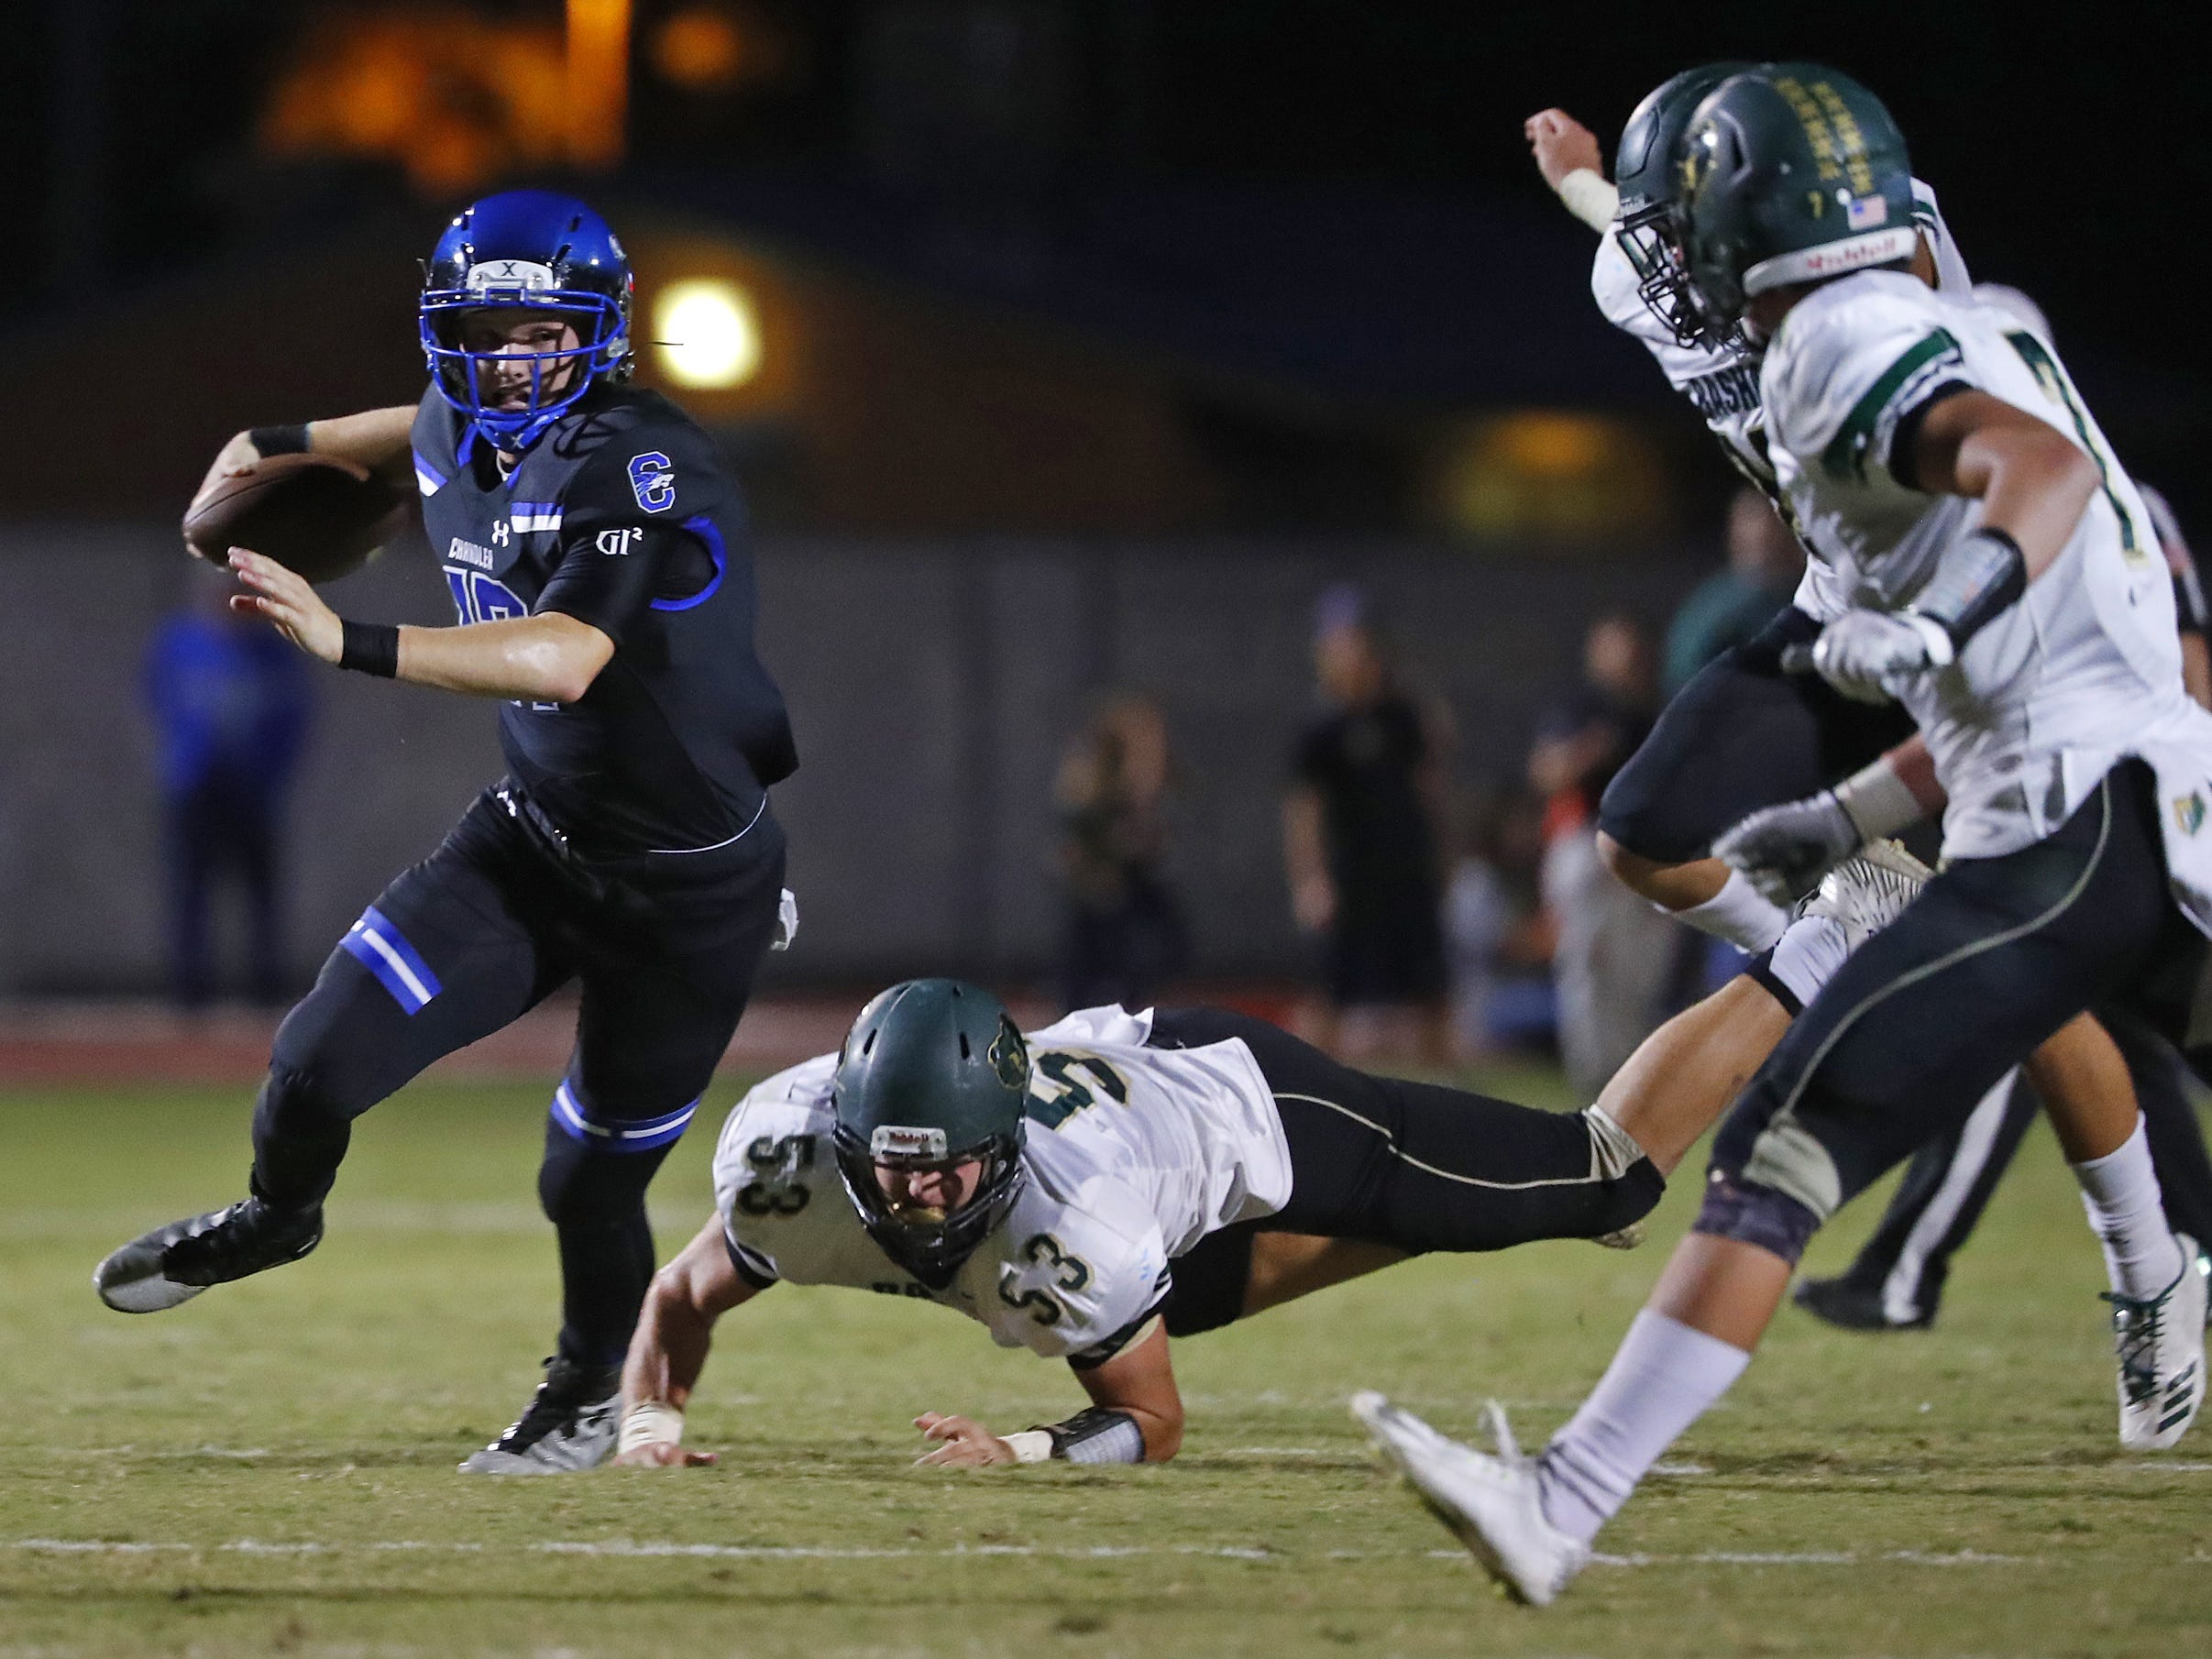 Chandler's Jacob Conover (17) scrambles from Basha's 	Sean Smeltzer (53) at Chandler High School in Chandler, Ariz. on October 12, 2018.